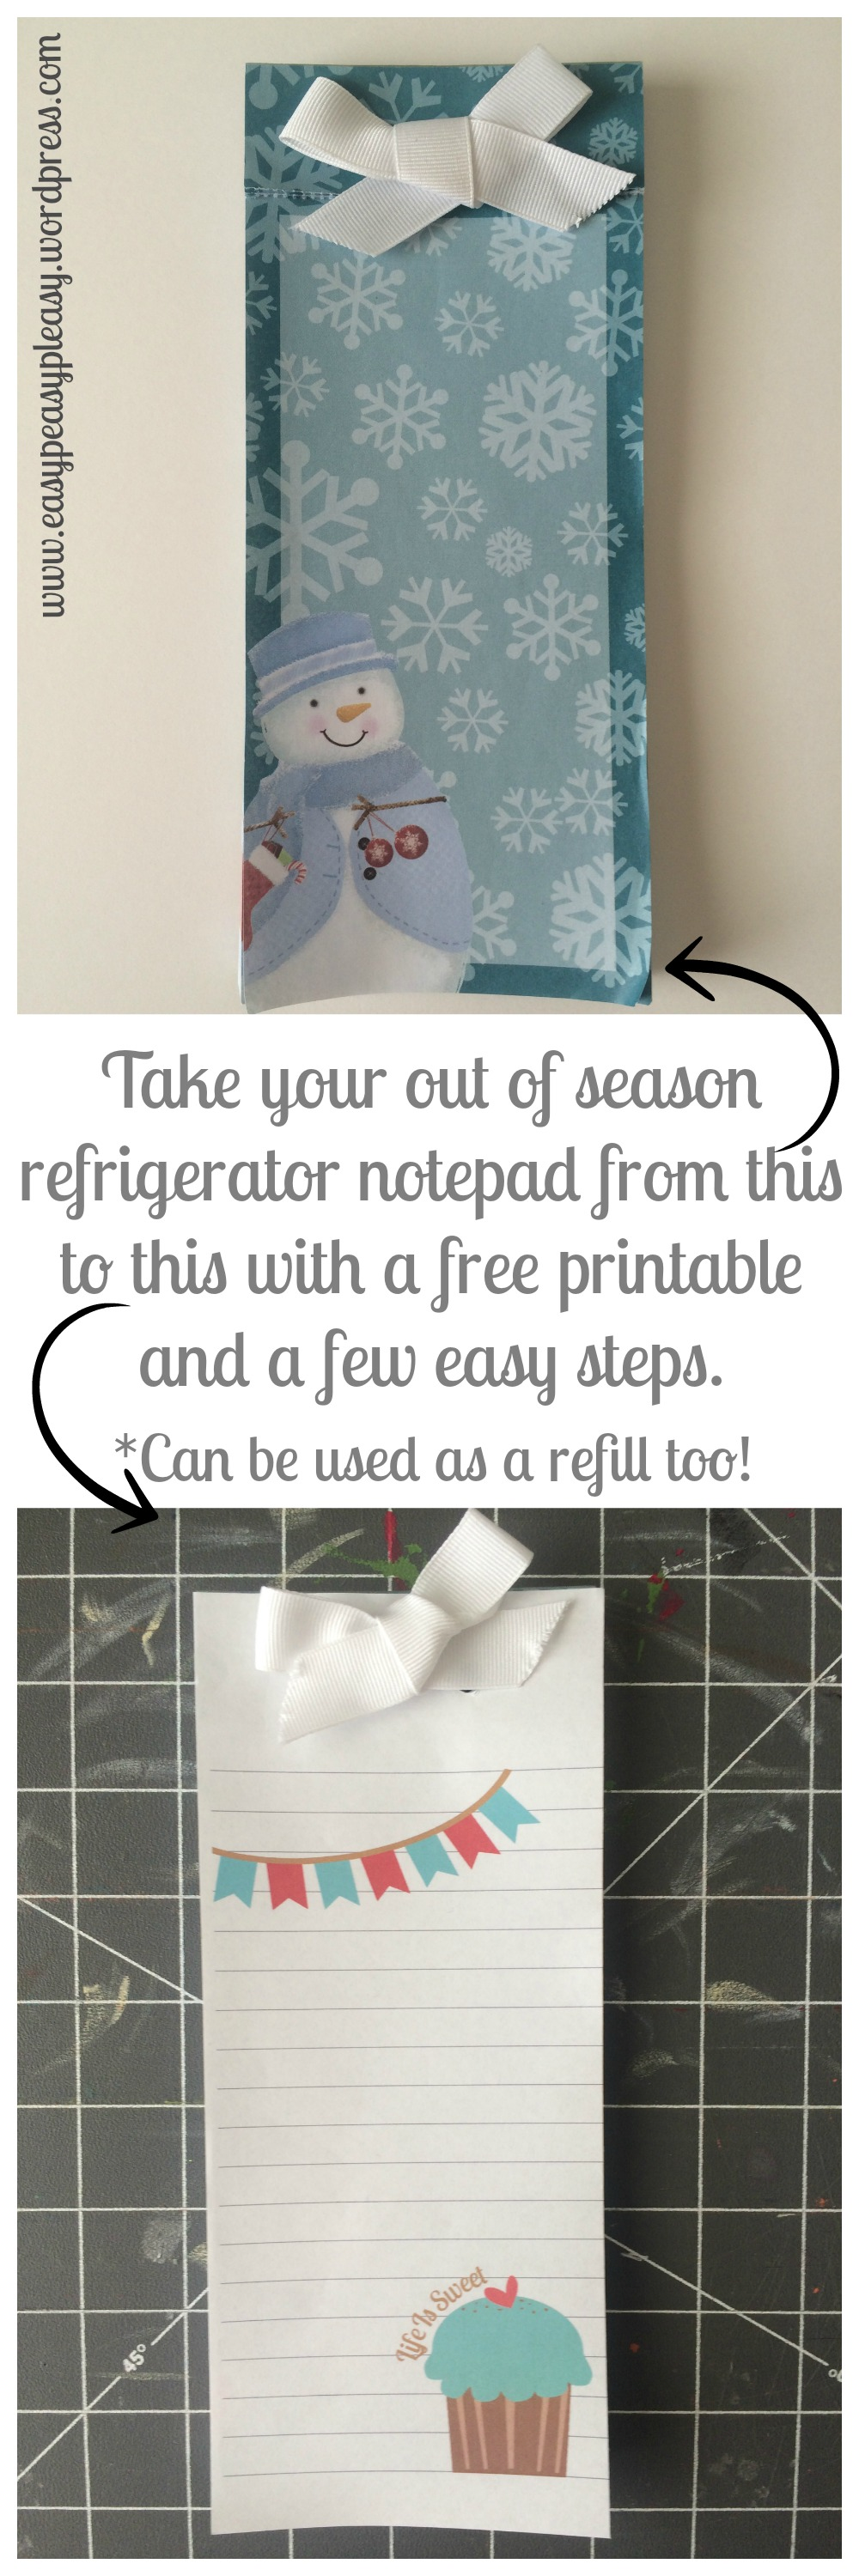 Take your out of season refrigerator notepad from this to this with a free printable and a few easy steps at www.easypeasypleasy.wordpress.com